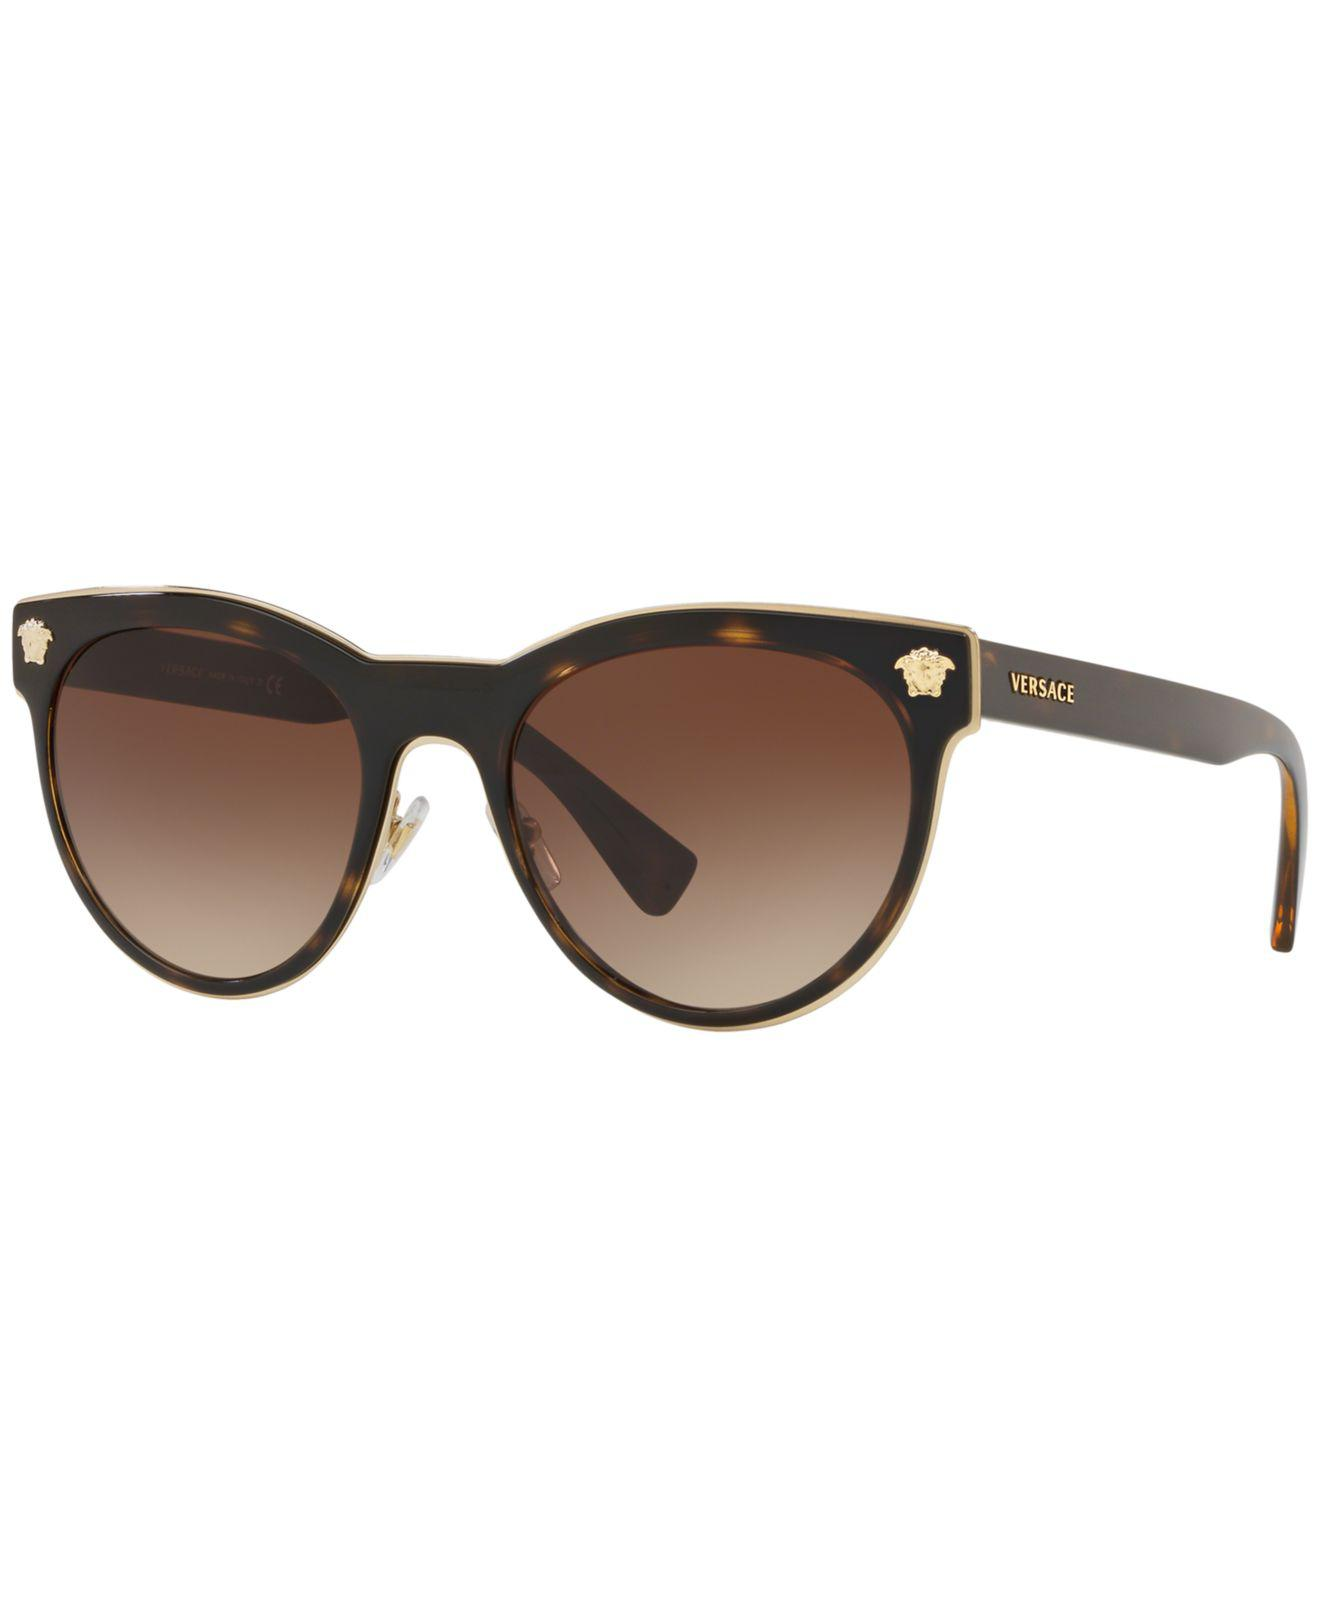 85ad027b2610 Versace - Brown Sunglasses